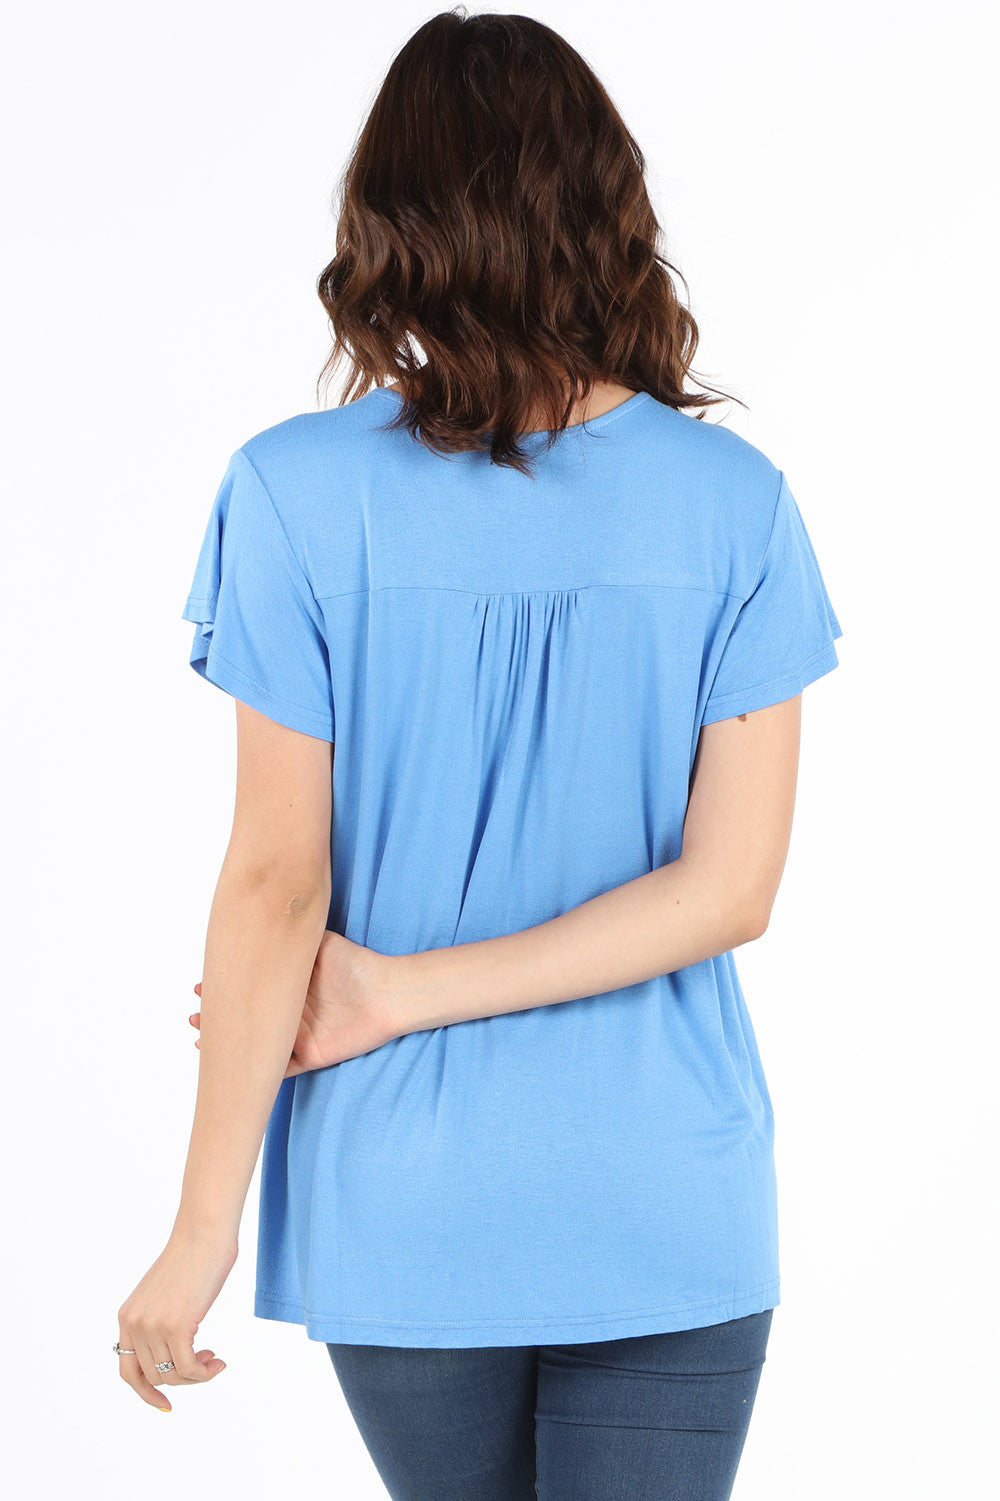 SB355 Sky Blue Embroidered Lace Up Blouse